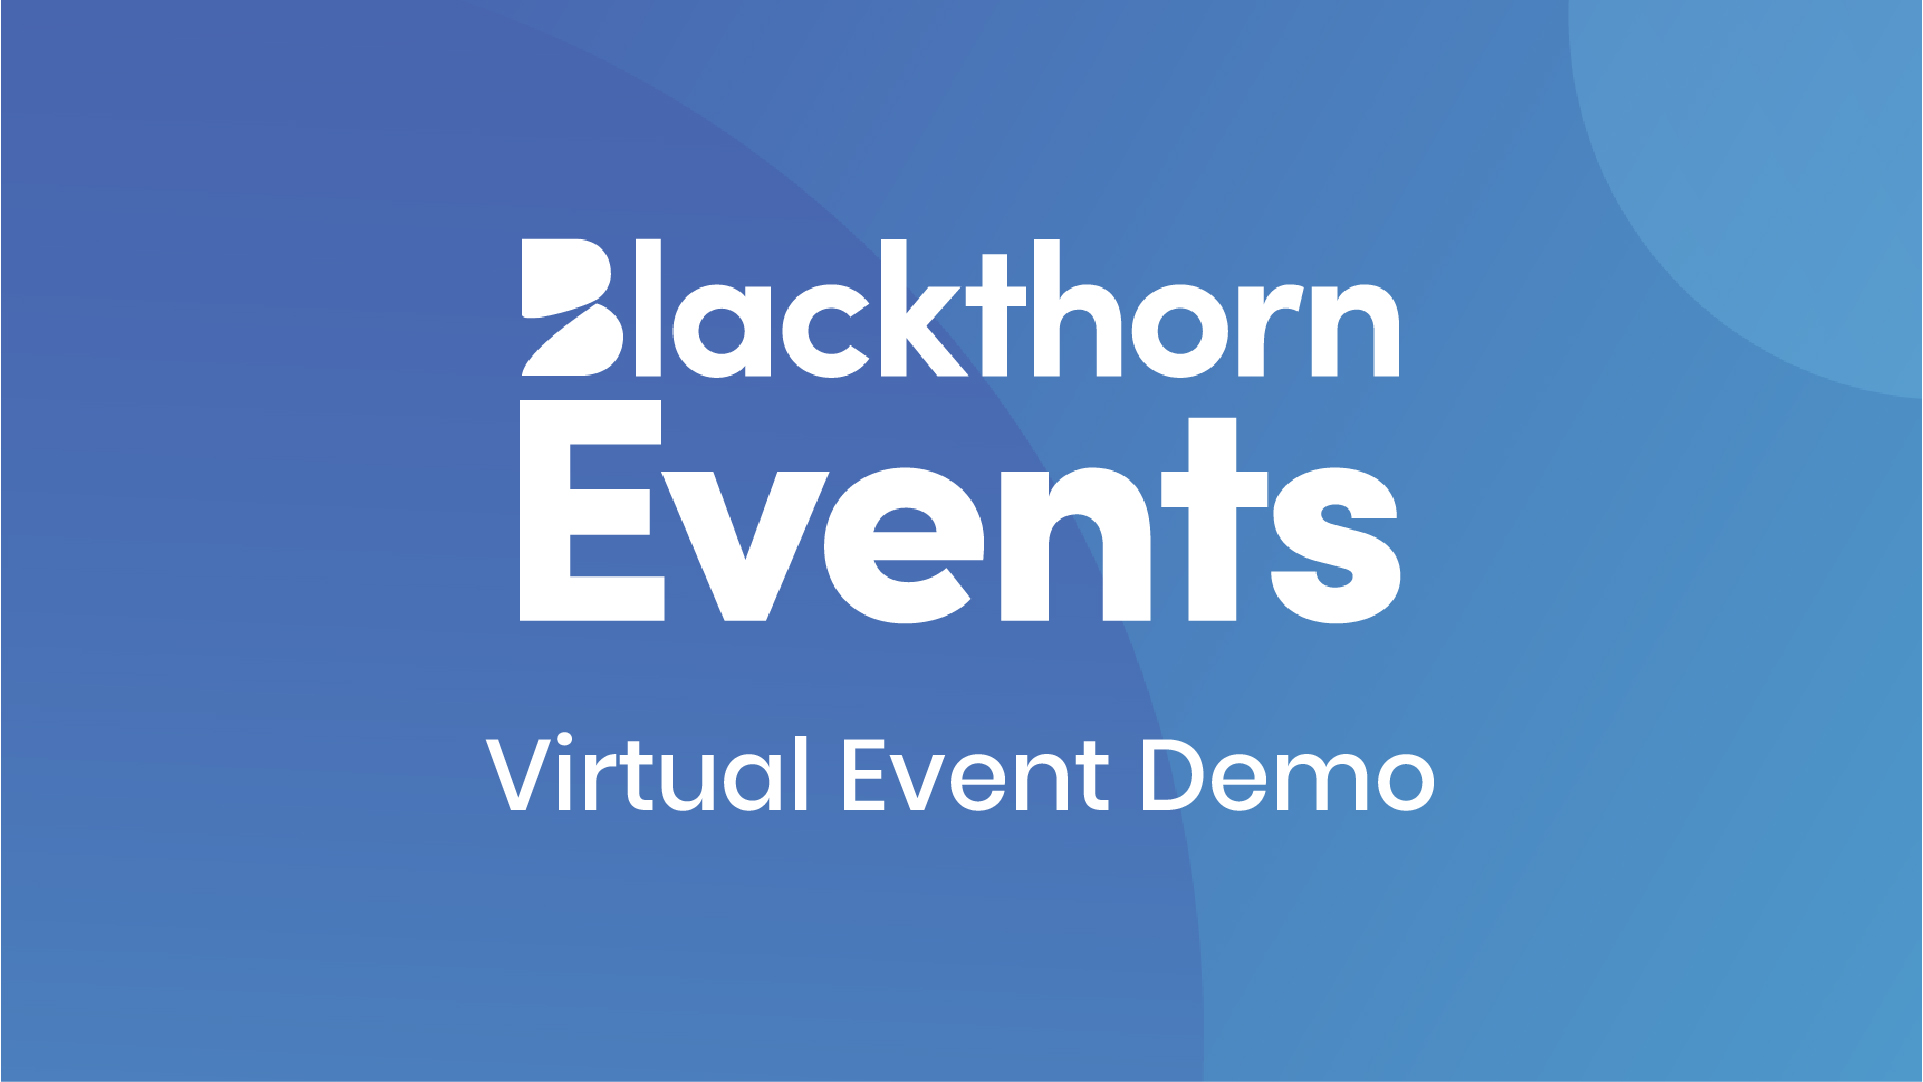 Using Blackthorn Events for Virtual Events